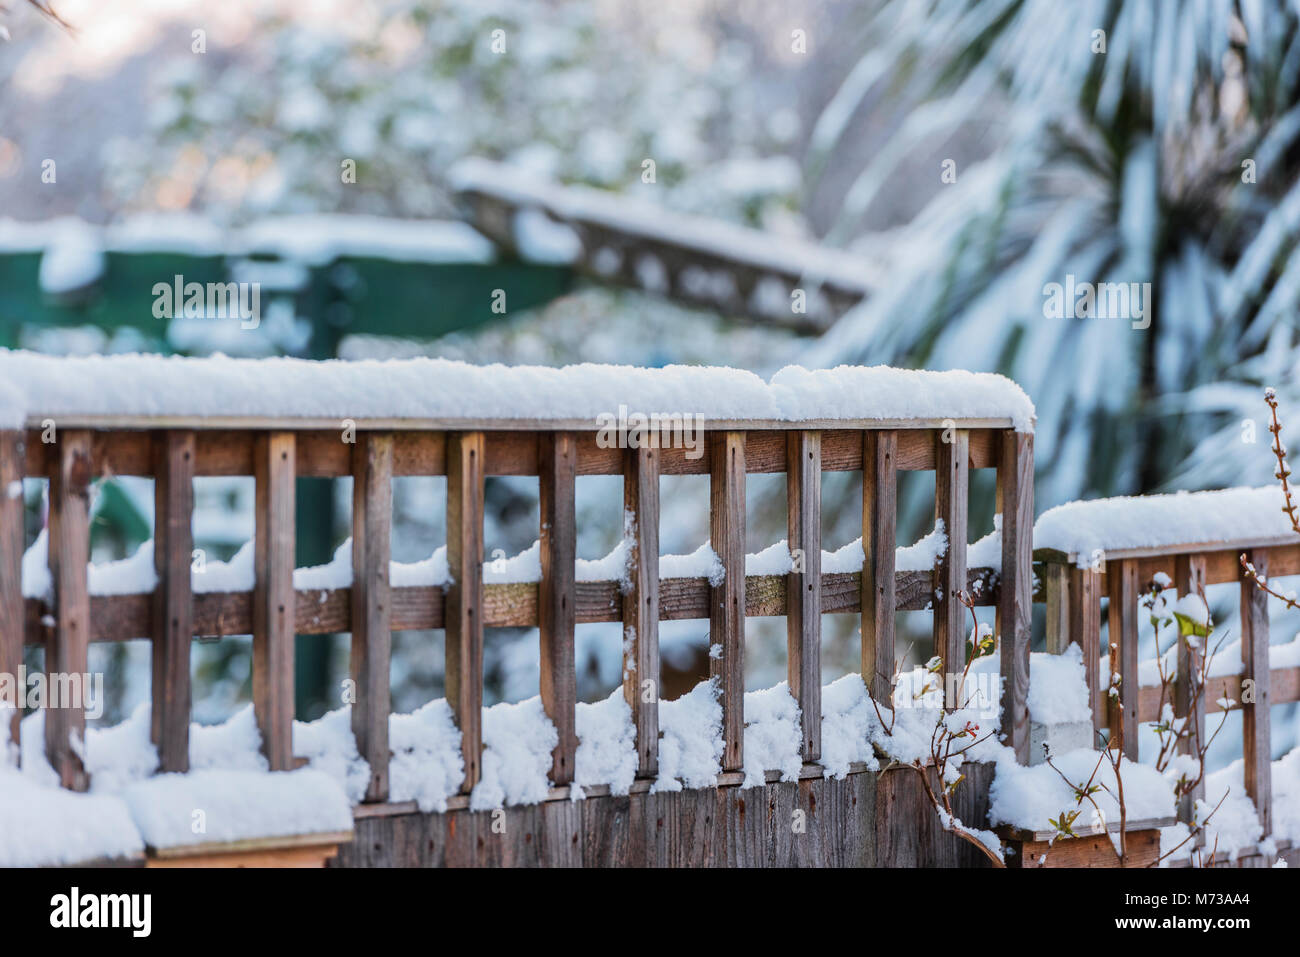 Unusually heavy snow in the southe east of england, urban Essex with several centimeteres. - Stock Image